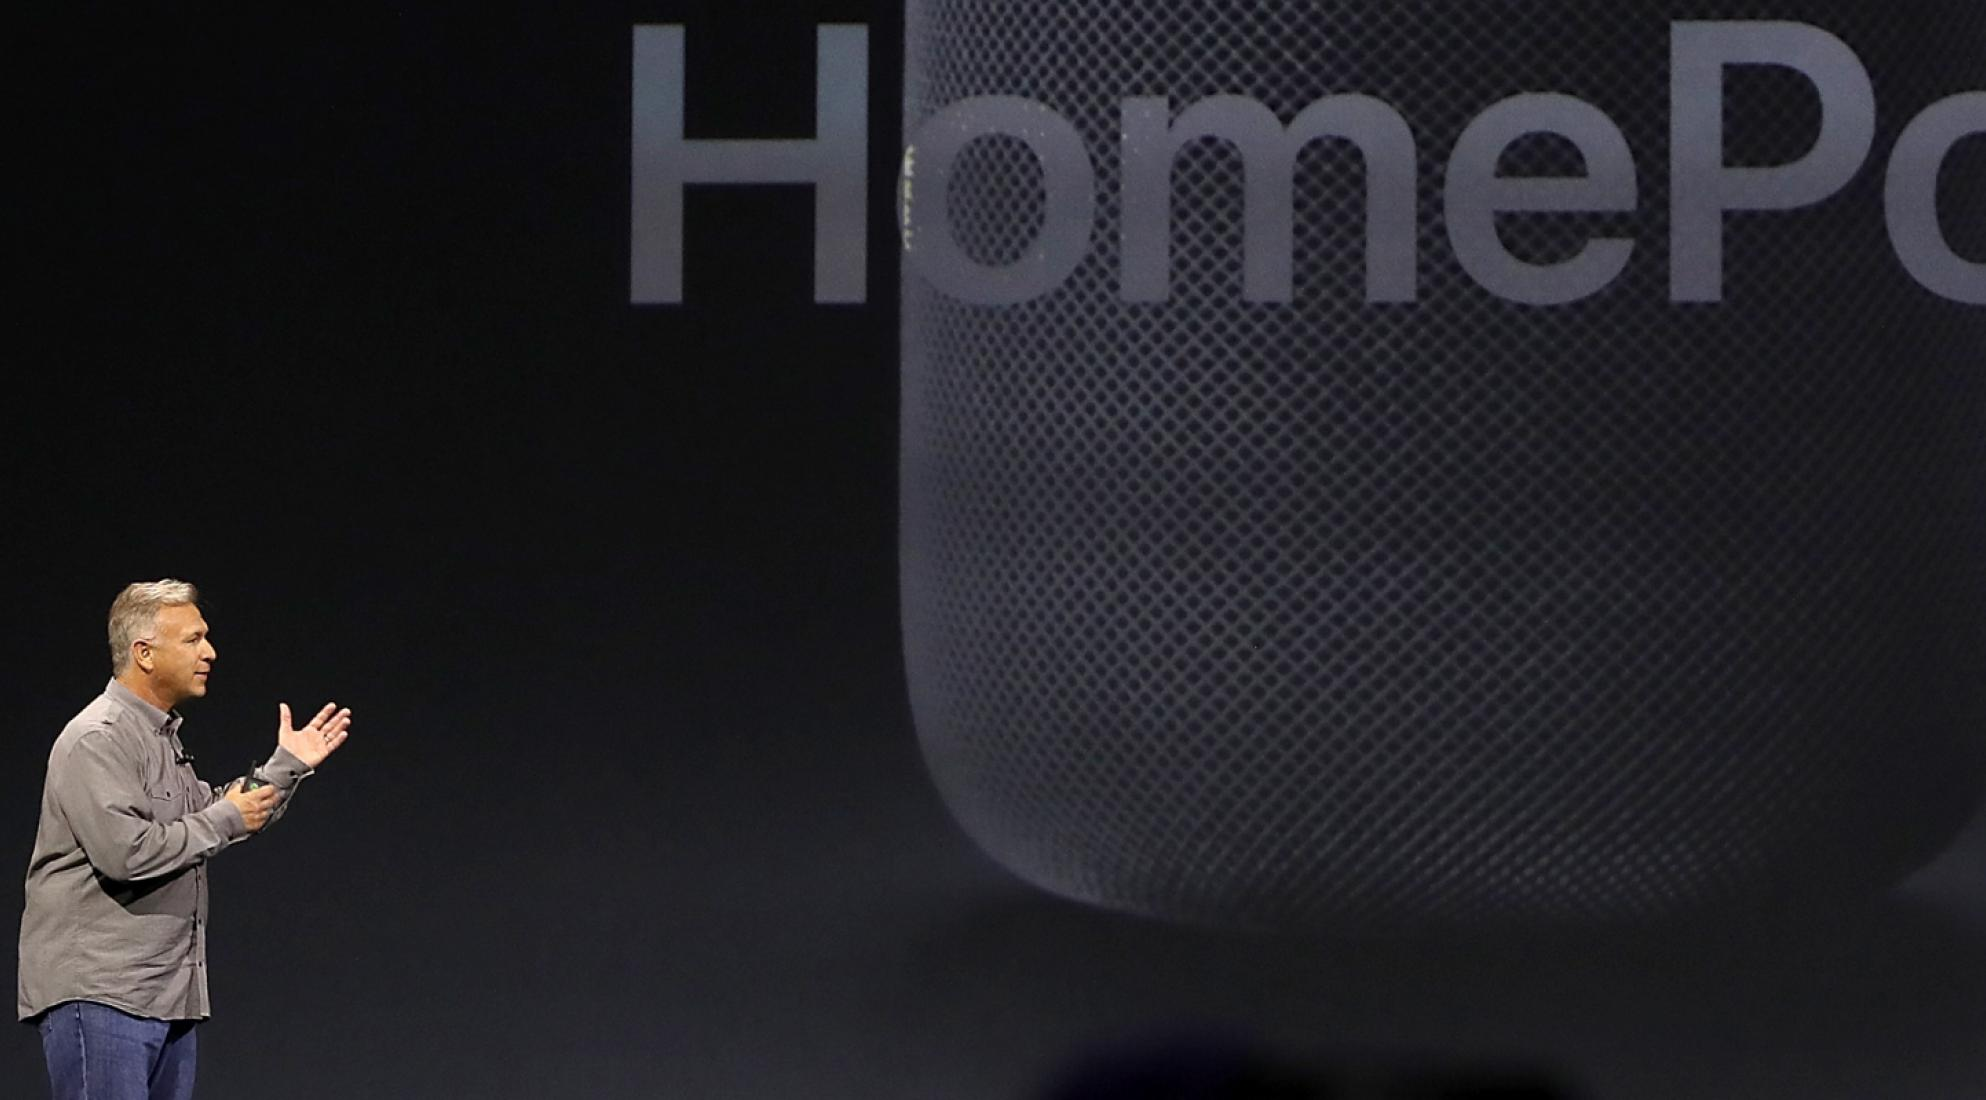 giant HomePod image projected behind speaker on stage